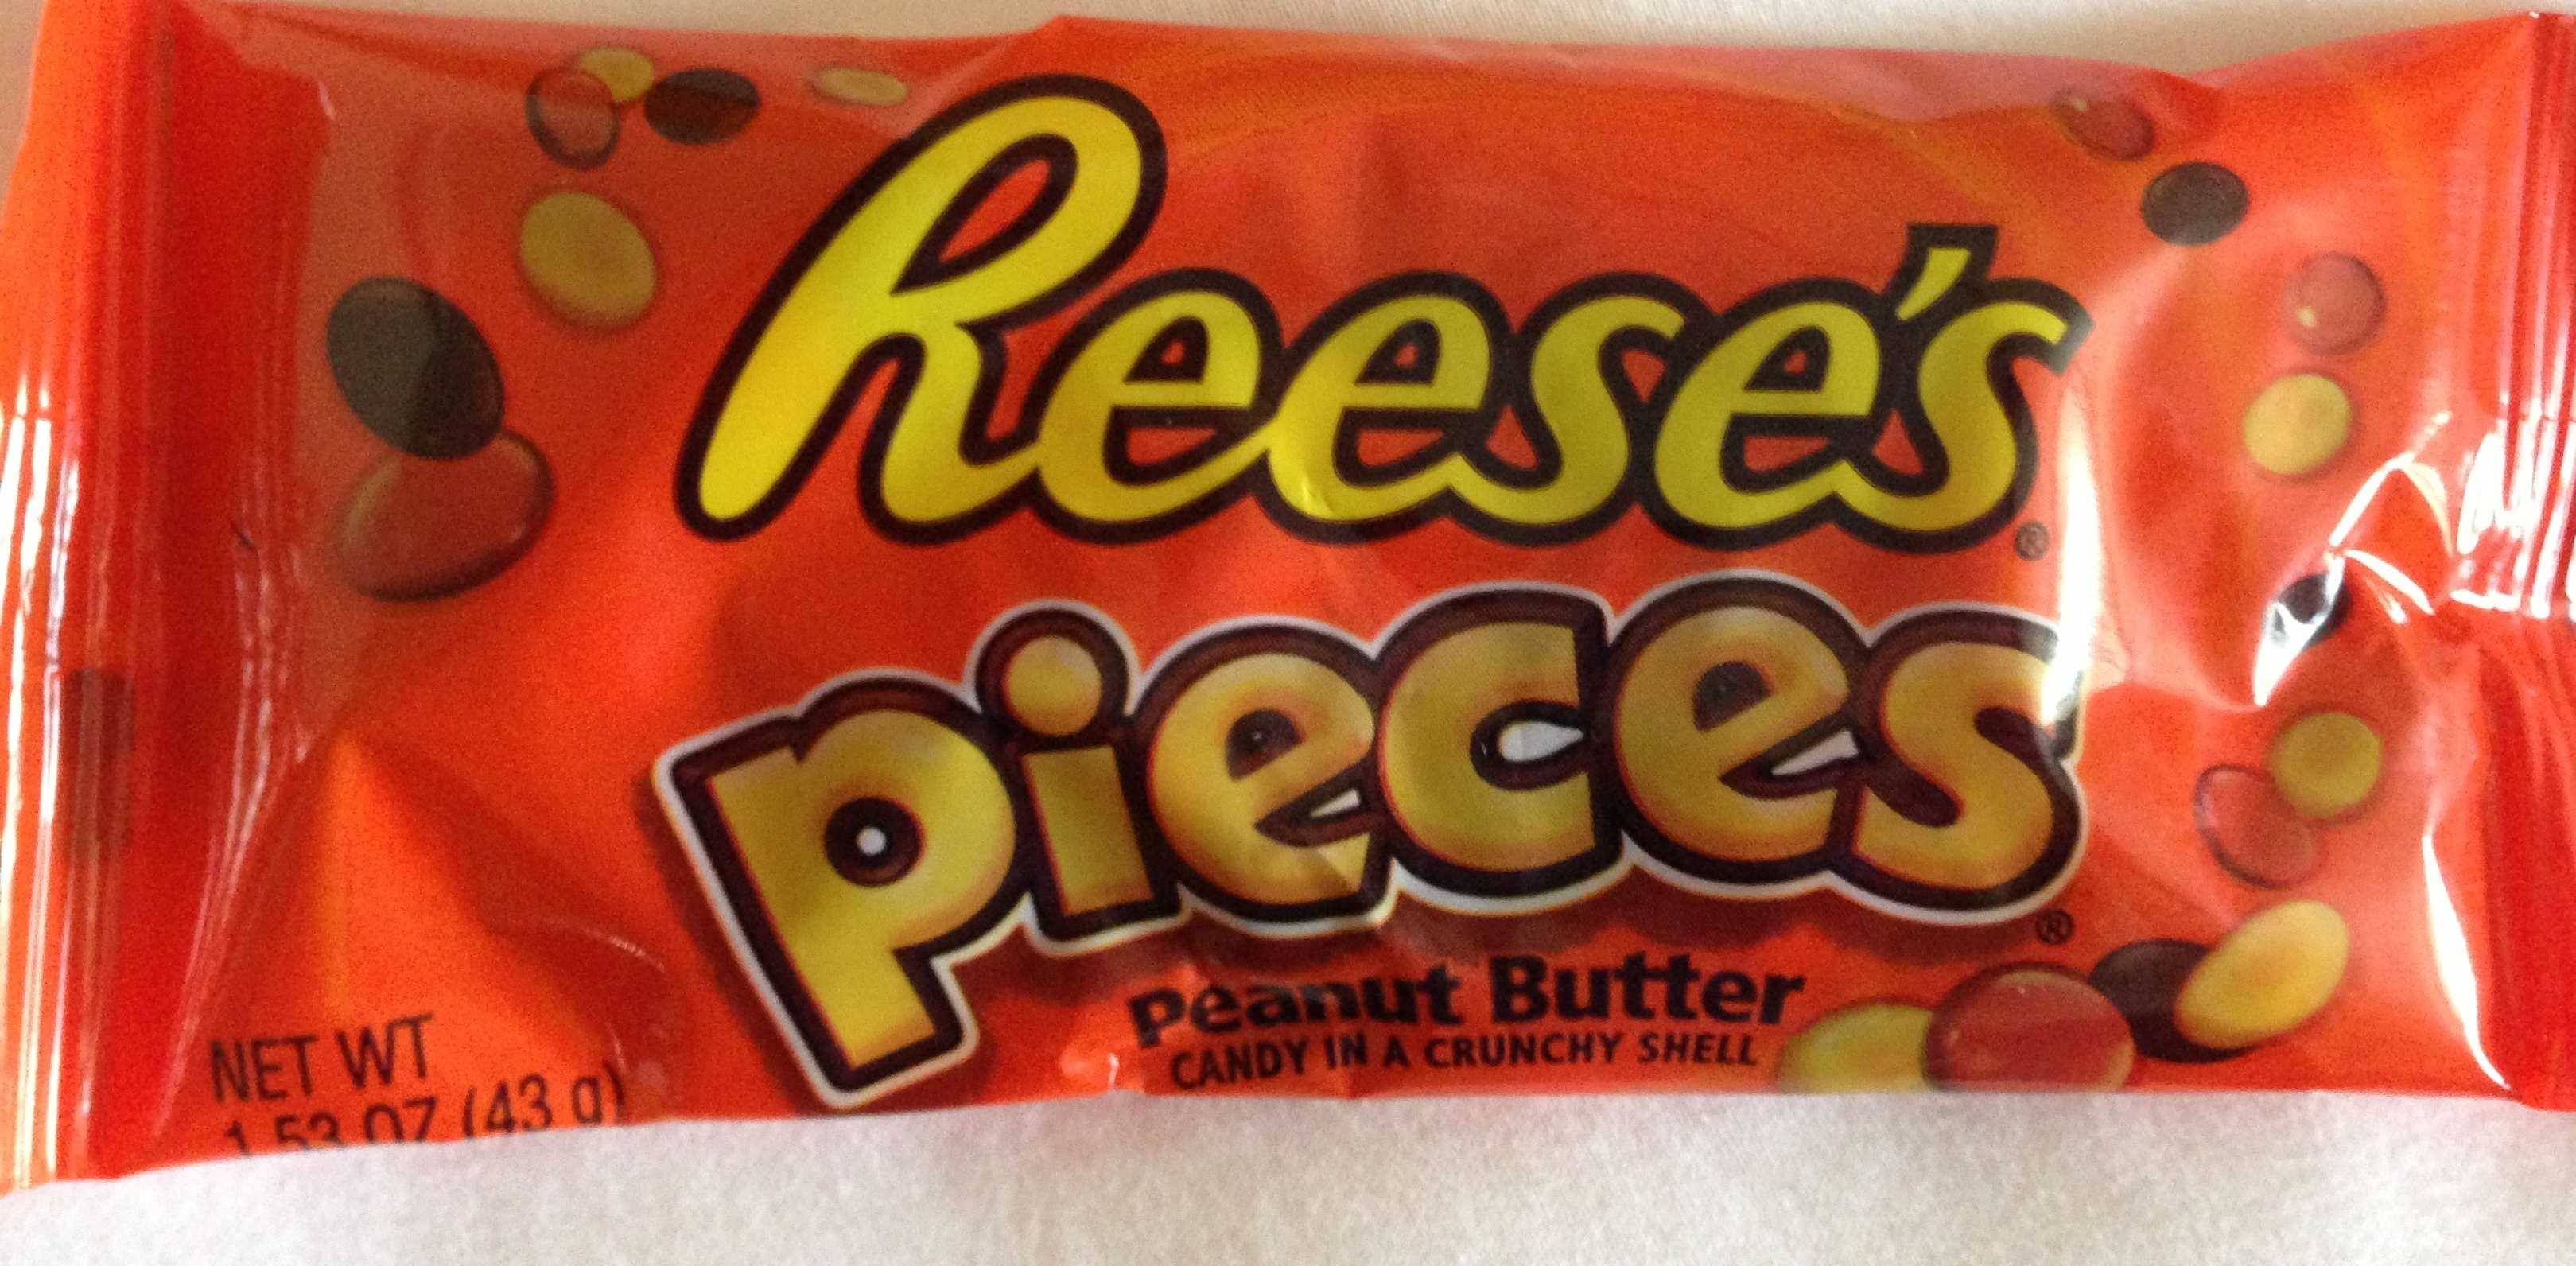 Pieces Candy In A Crunchy Shell - Product